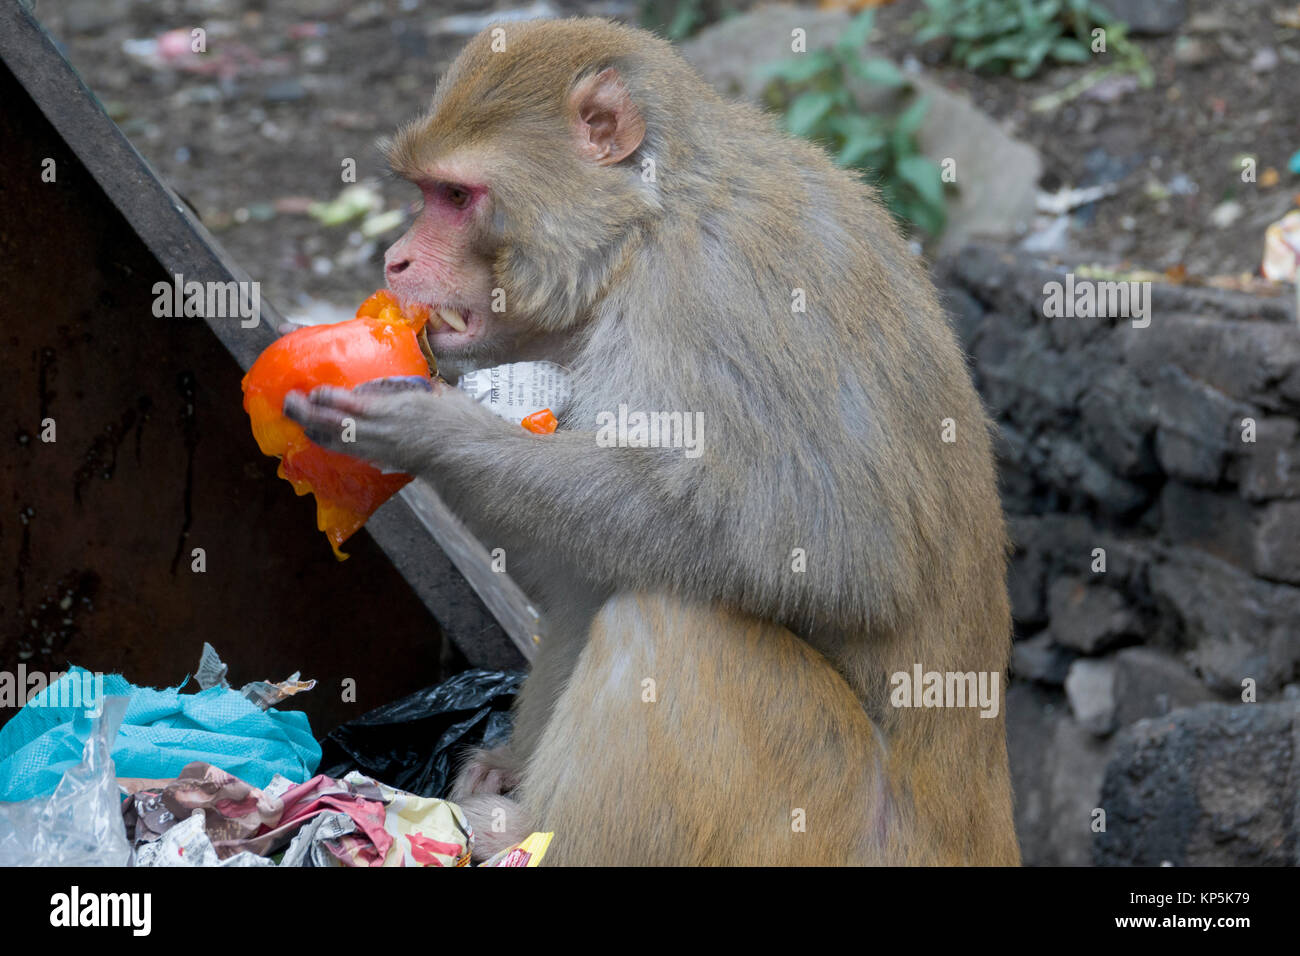 Rhesus macaque monkey scavenging food from dumpster in Mcleod Ganj, India - Stock Image